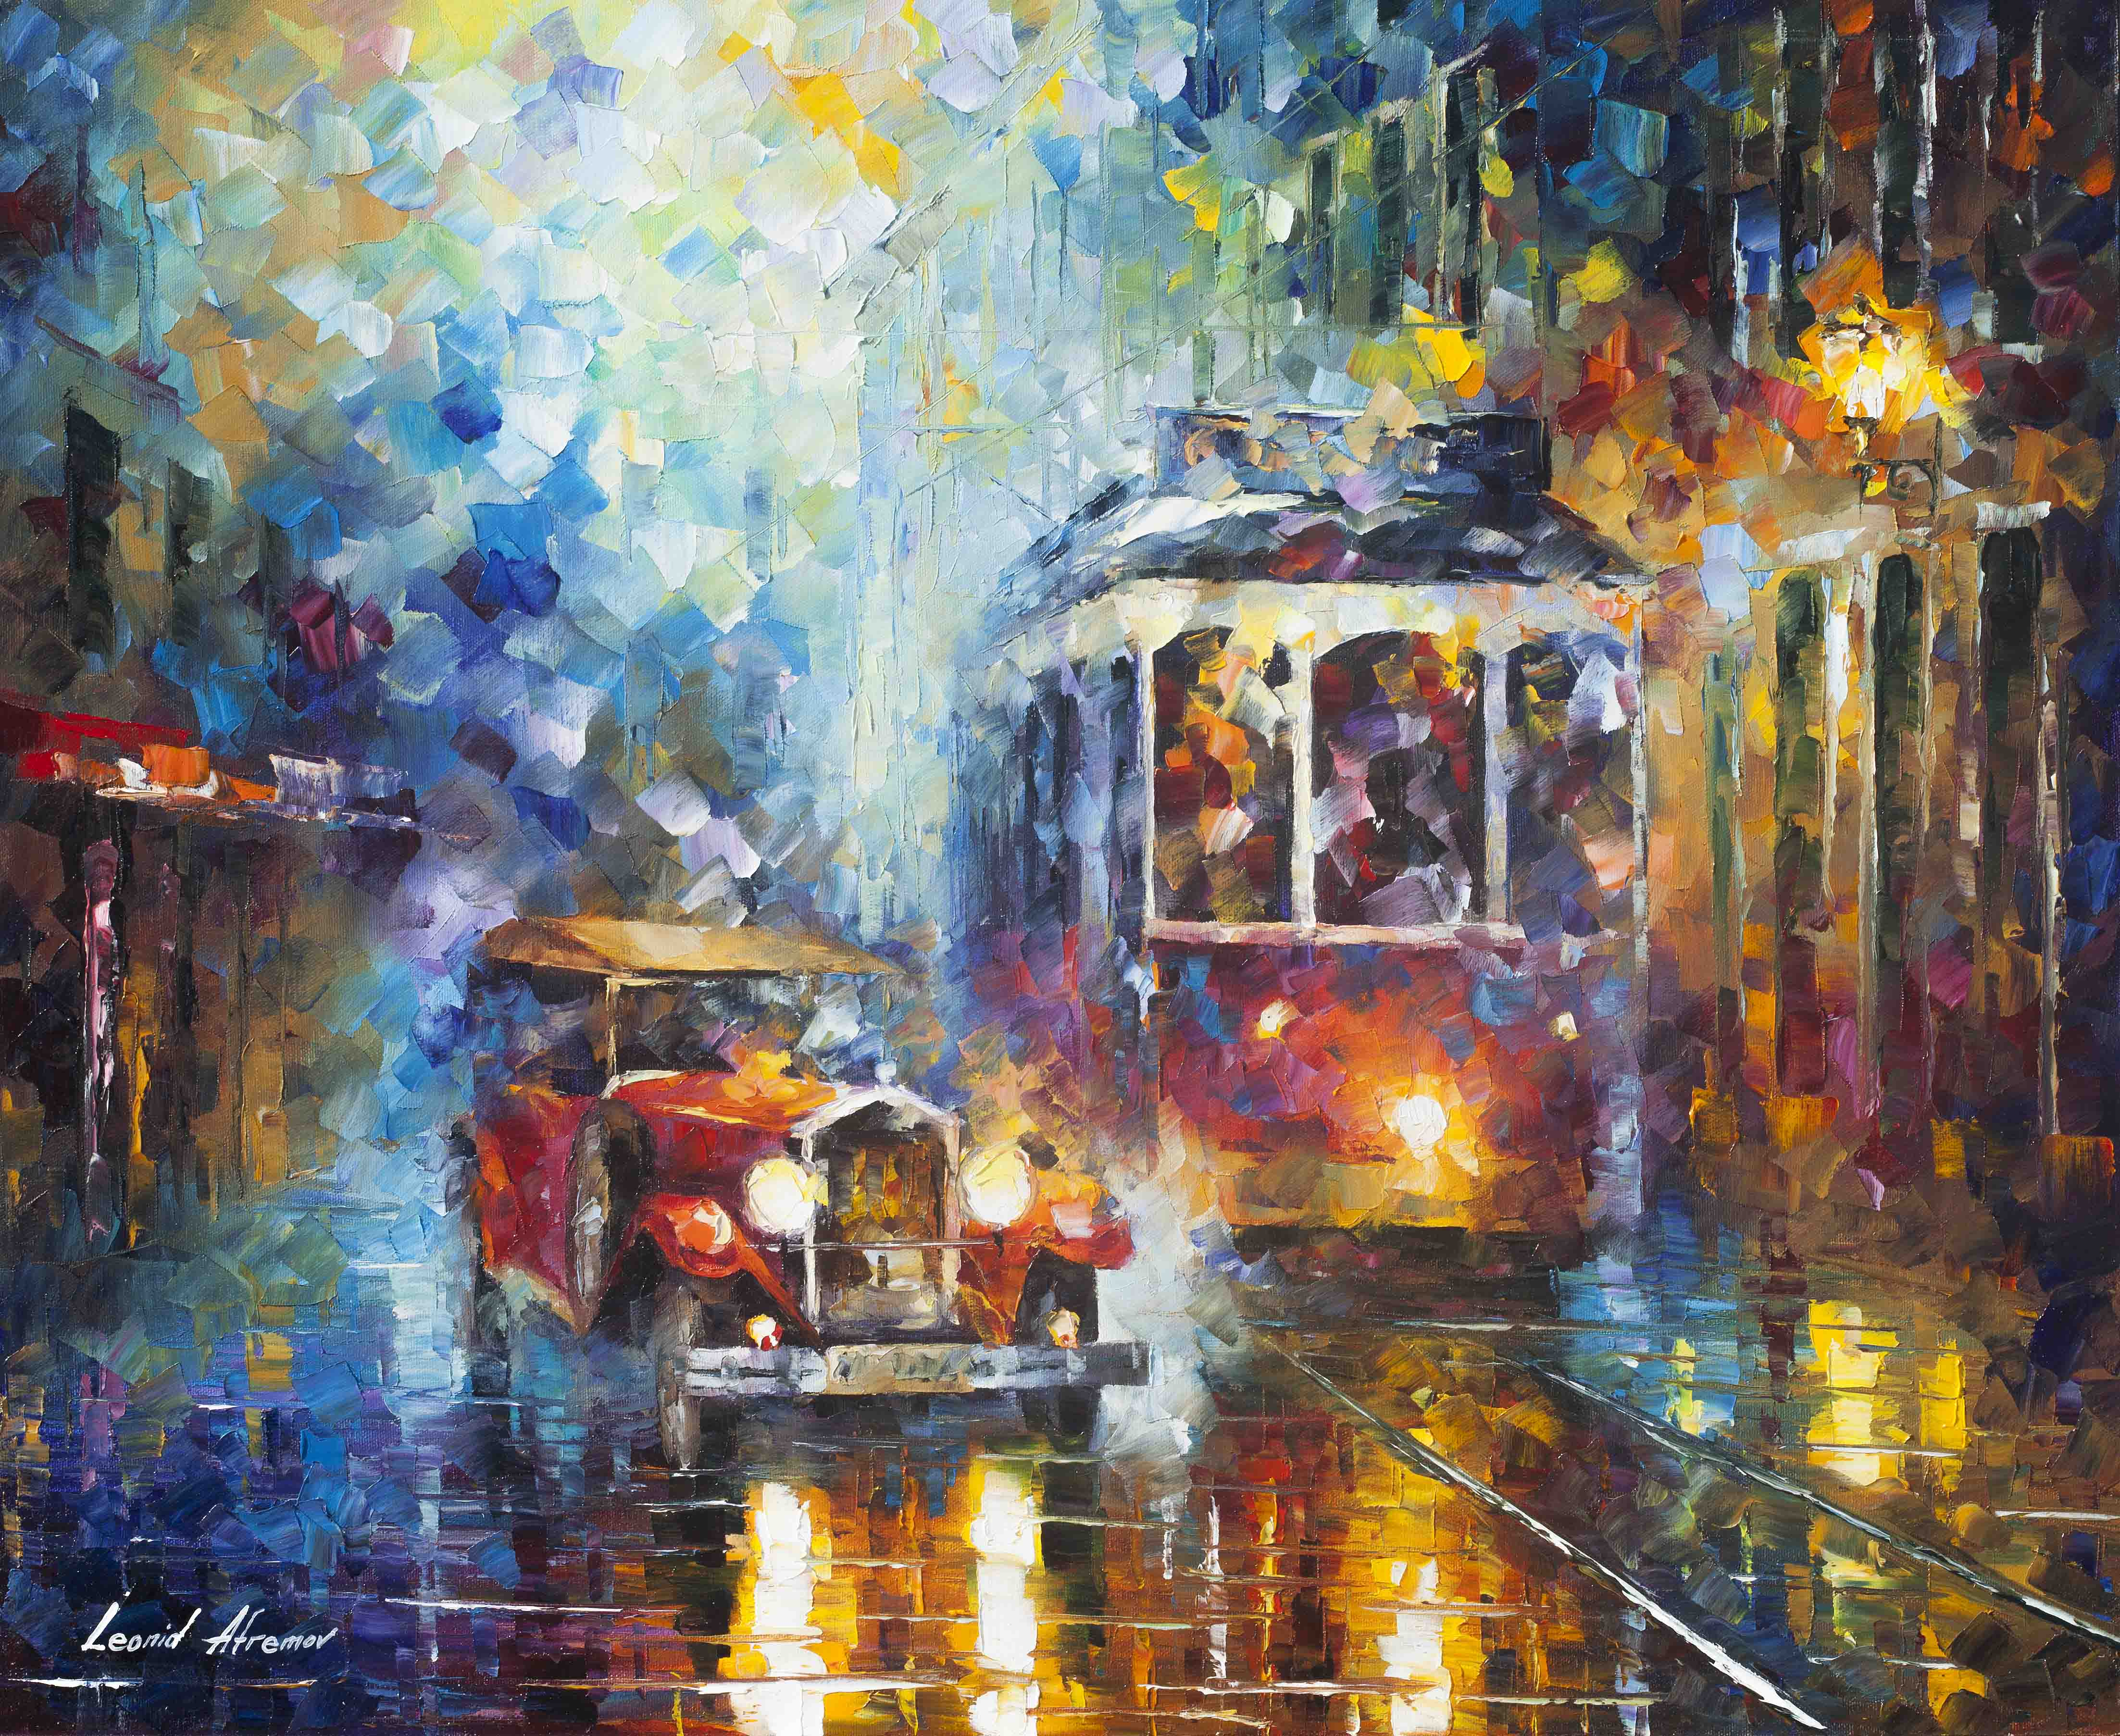 "OLD SAN FRANCISCO - Original Oil Painting On Canvas By Leonid Afremov - 30""X24""  (75CM X 60CM)"